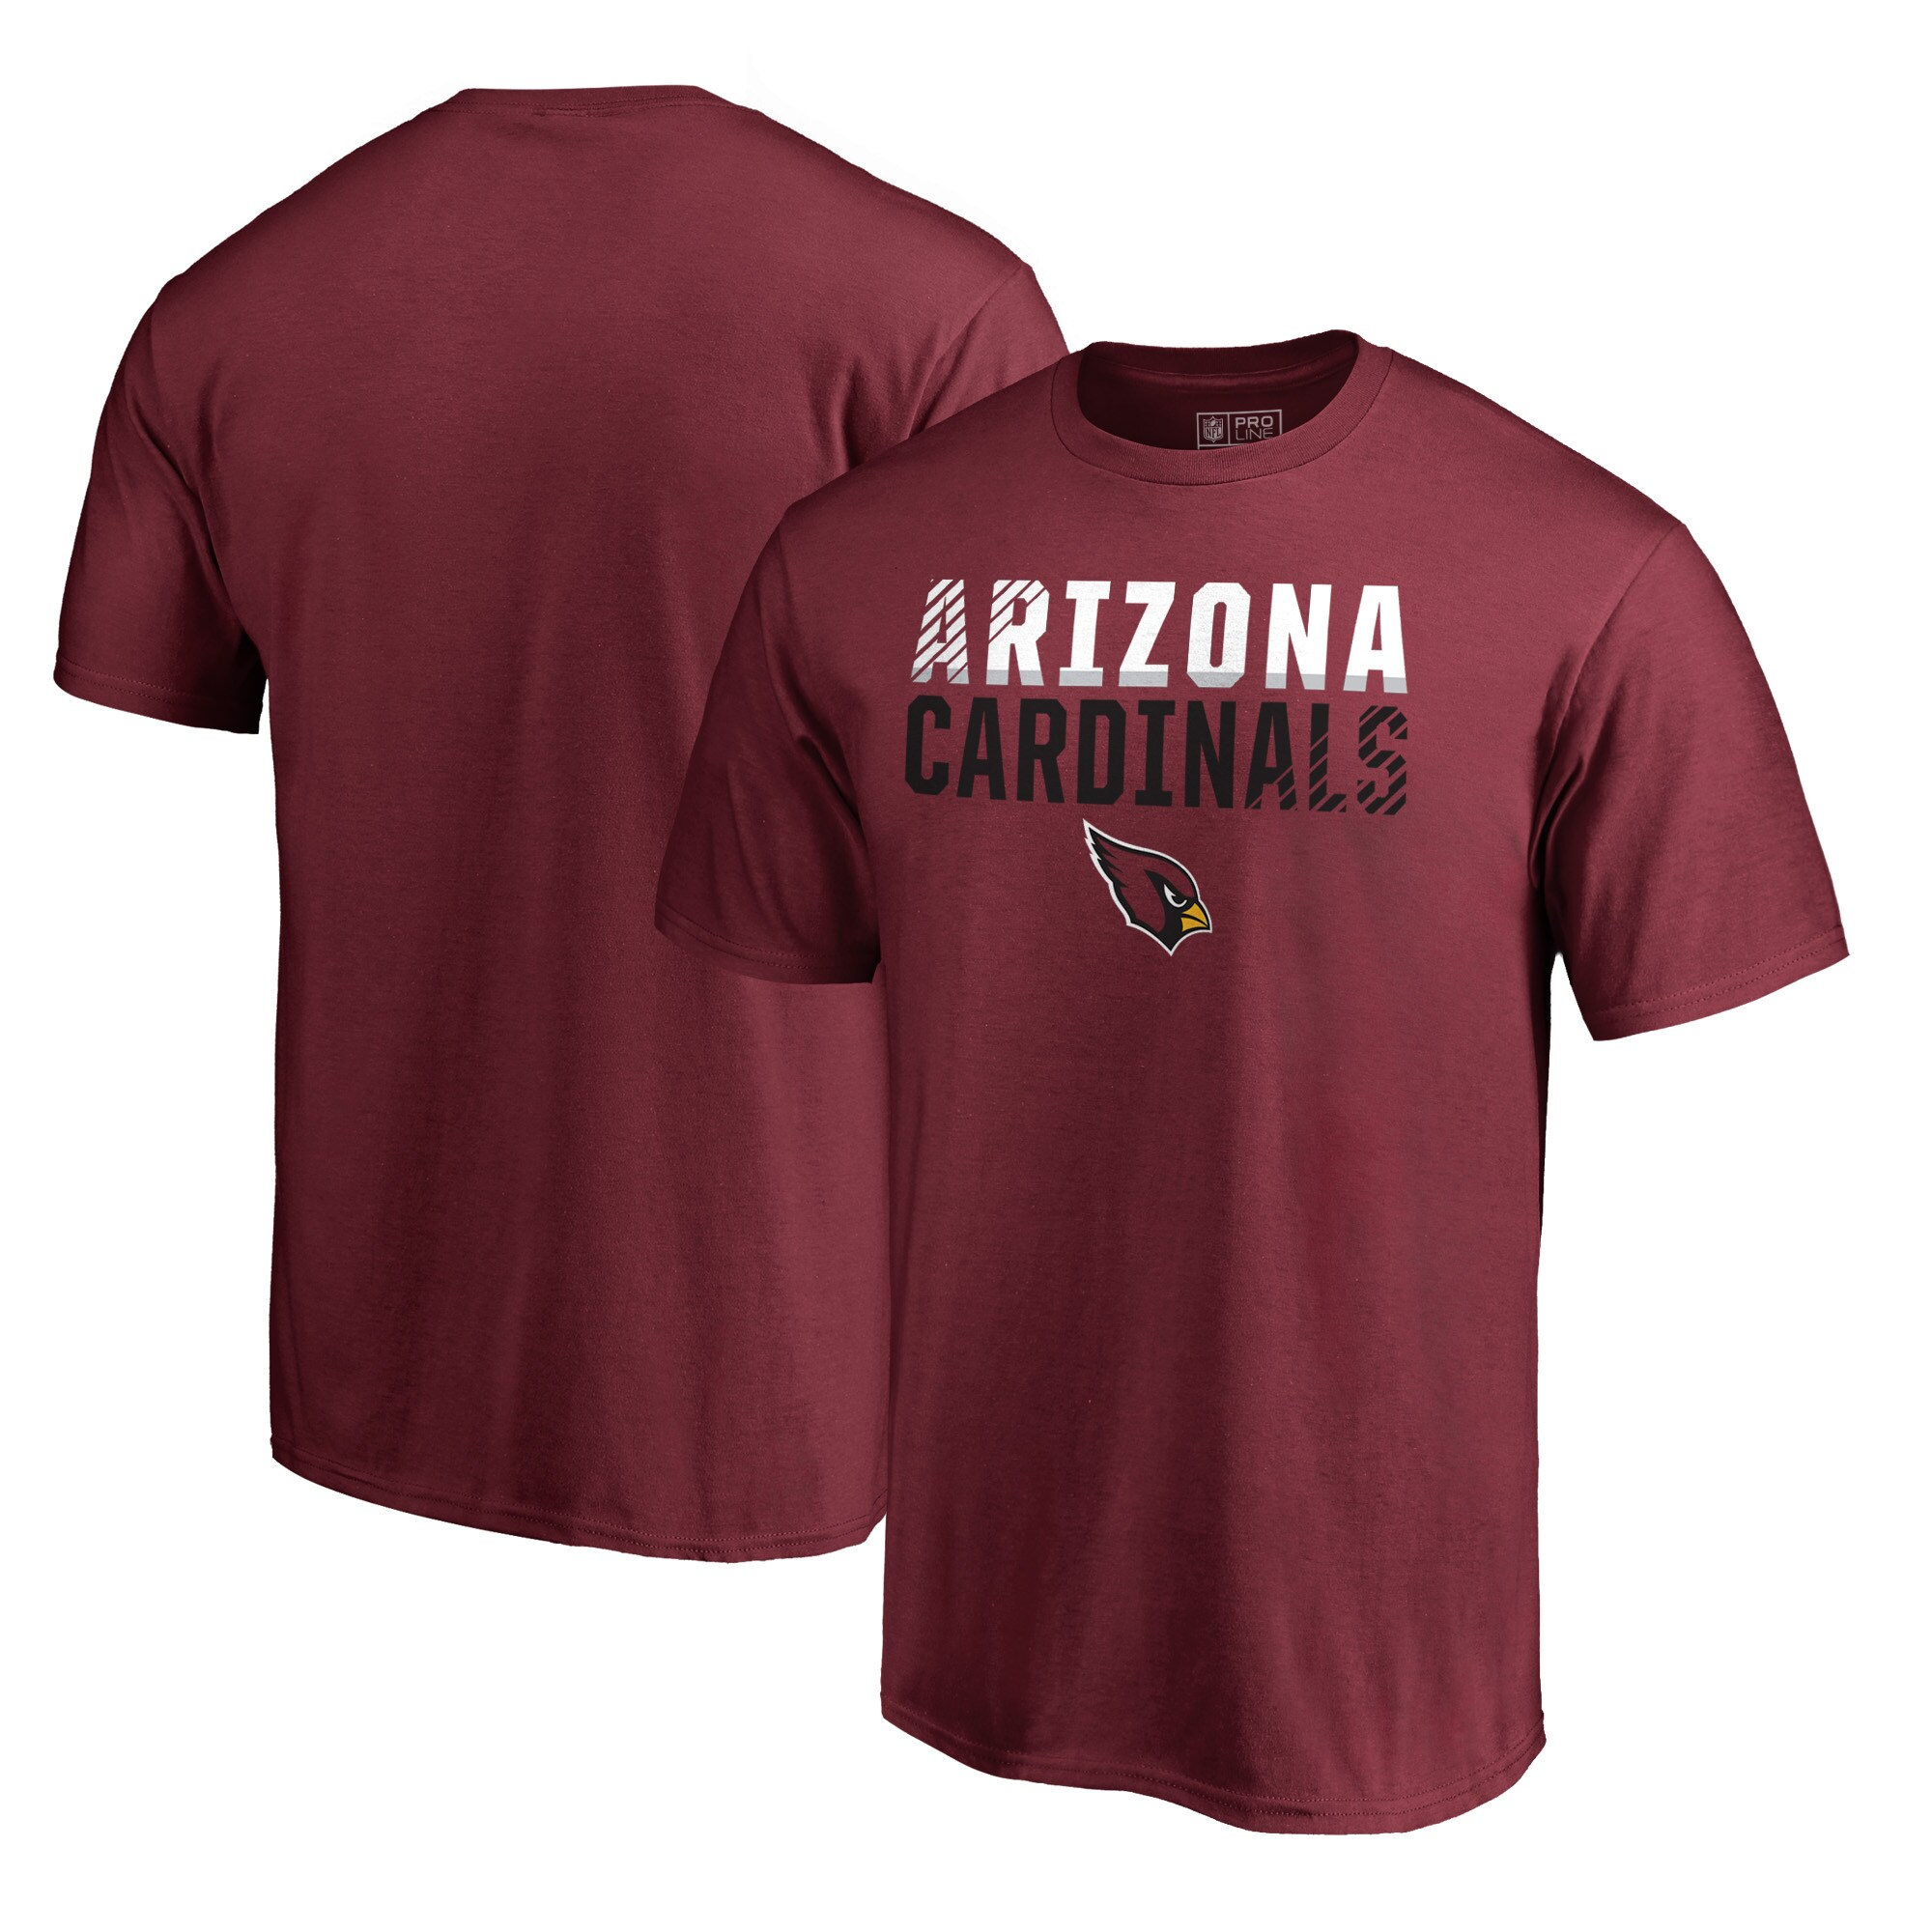 Arizona Cardinals NFL Pro Line by Fanatics Branded Iconic Collection Fade Out Big and Tall T-Shirt - Cardinal